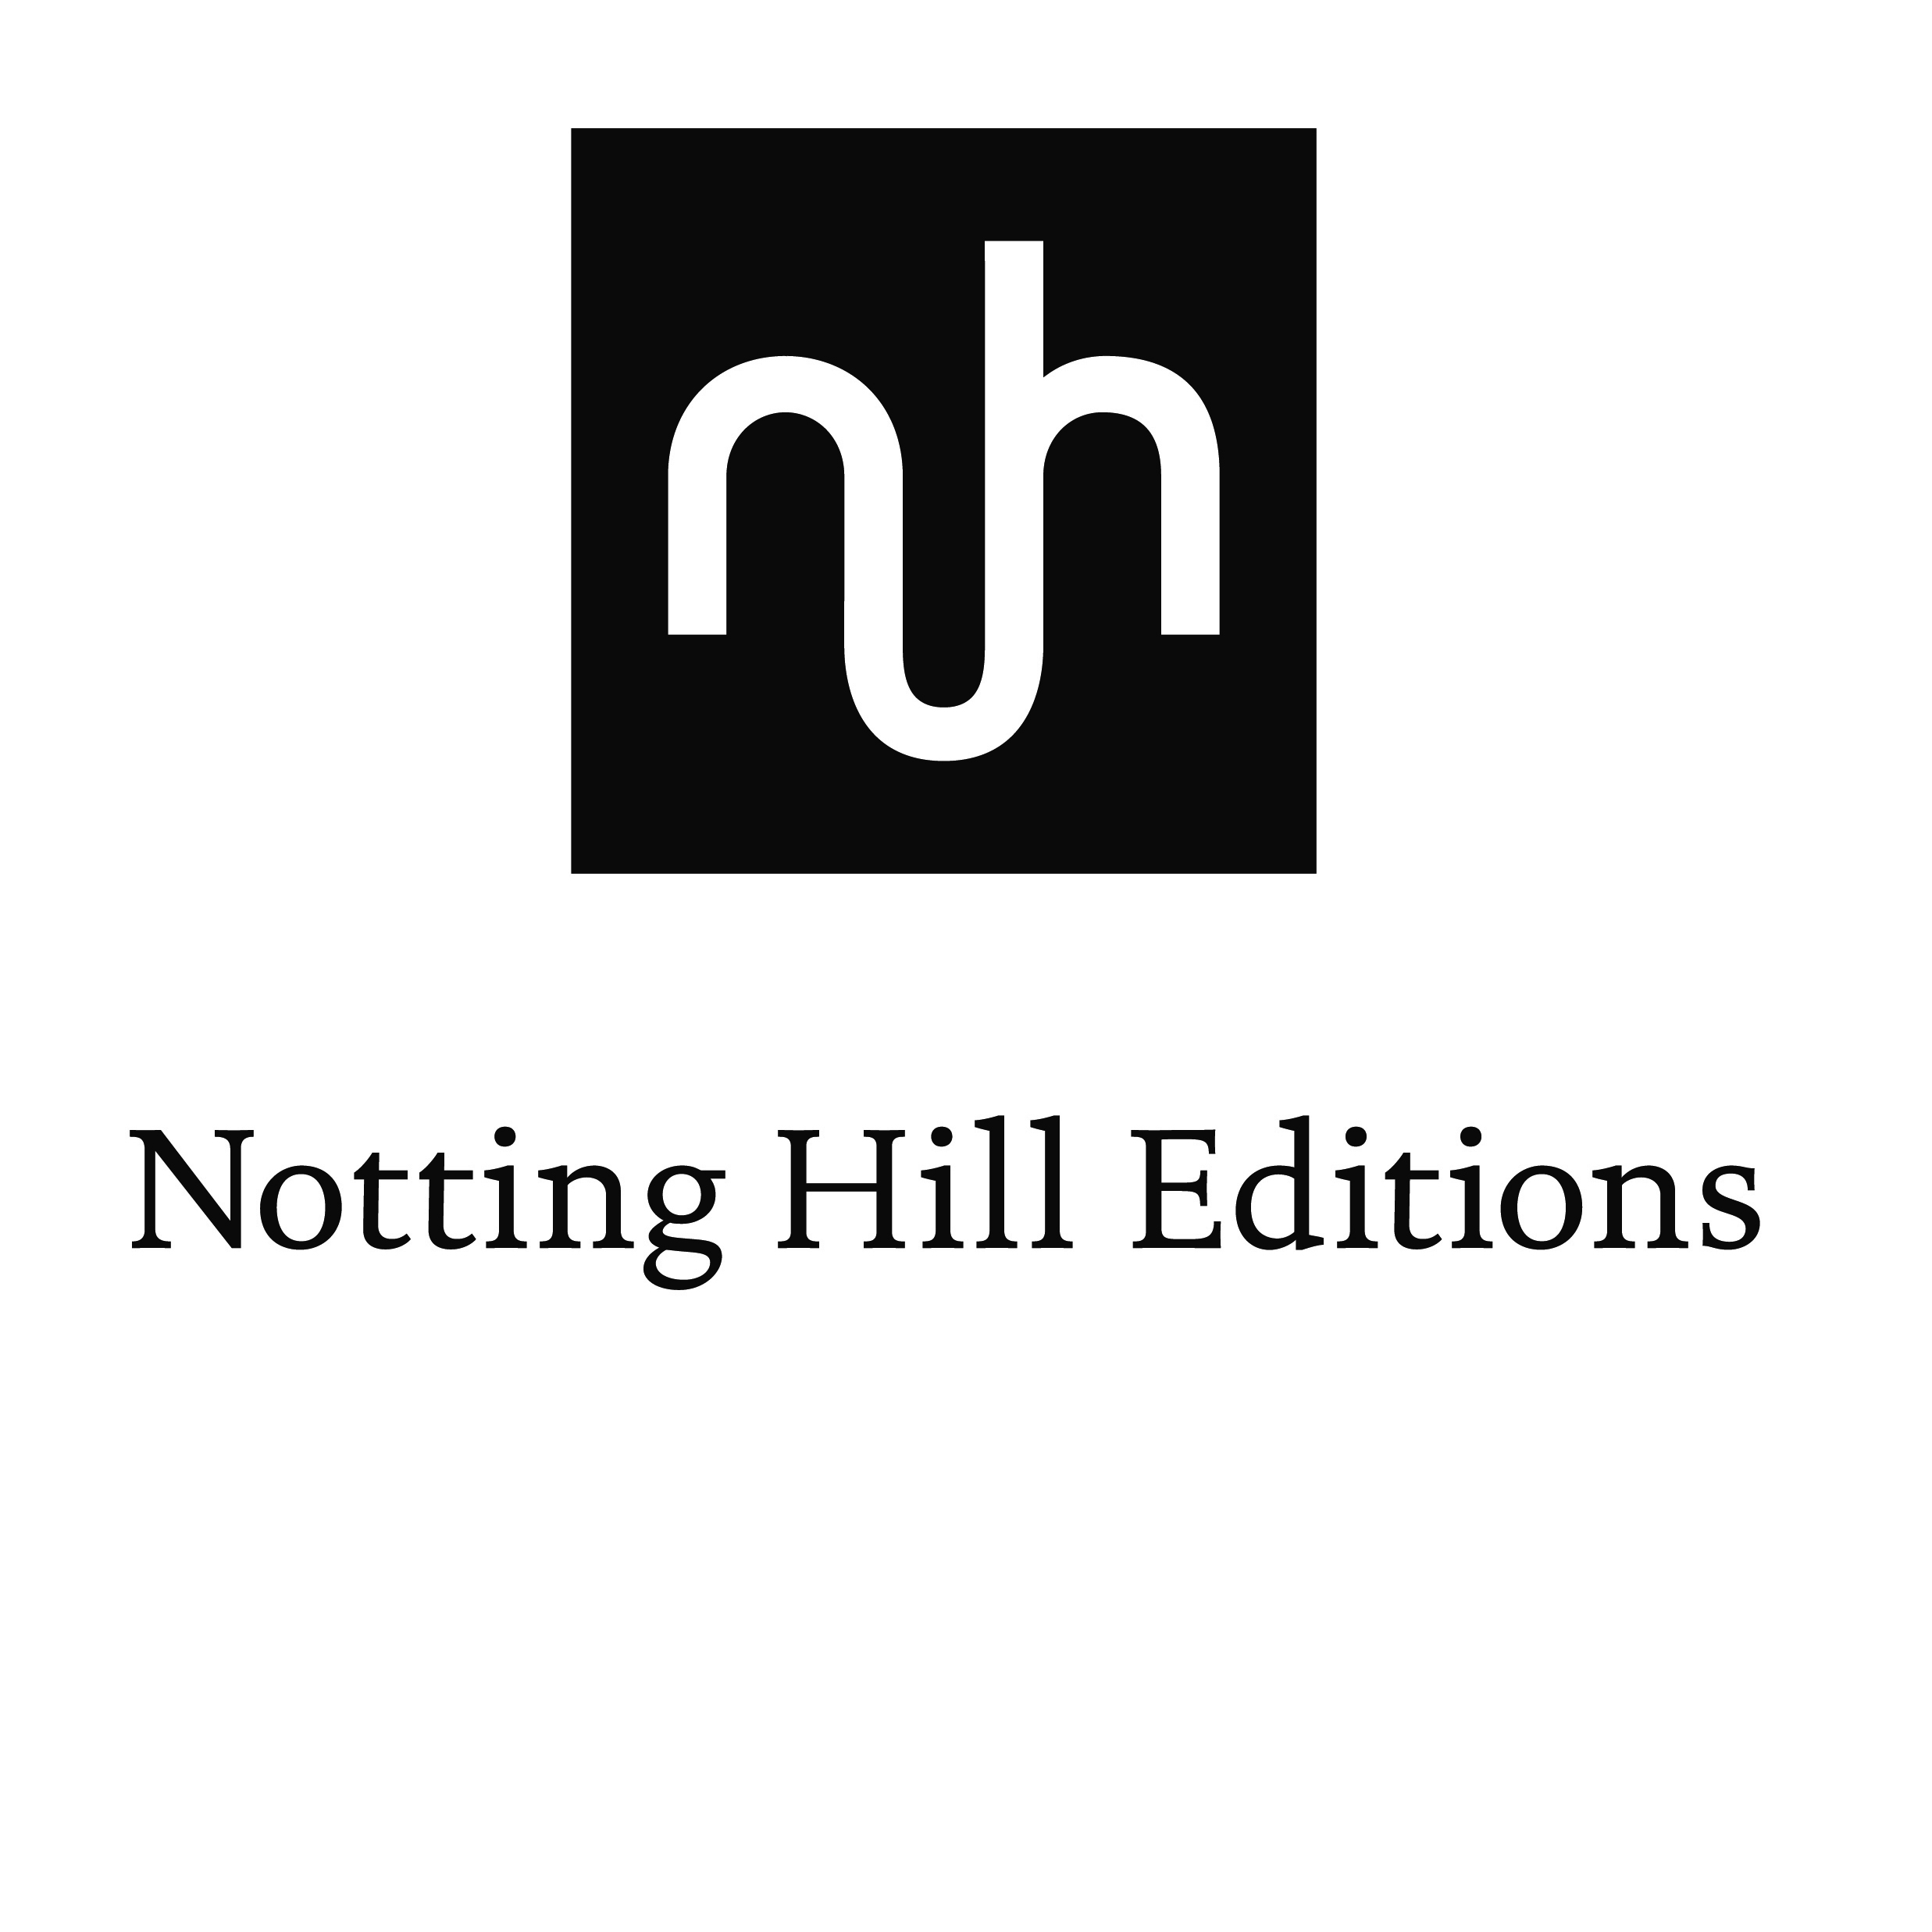 Notting Hill Editions